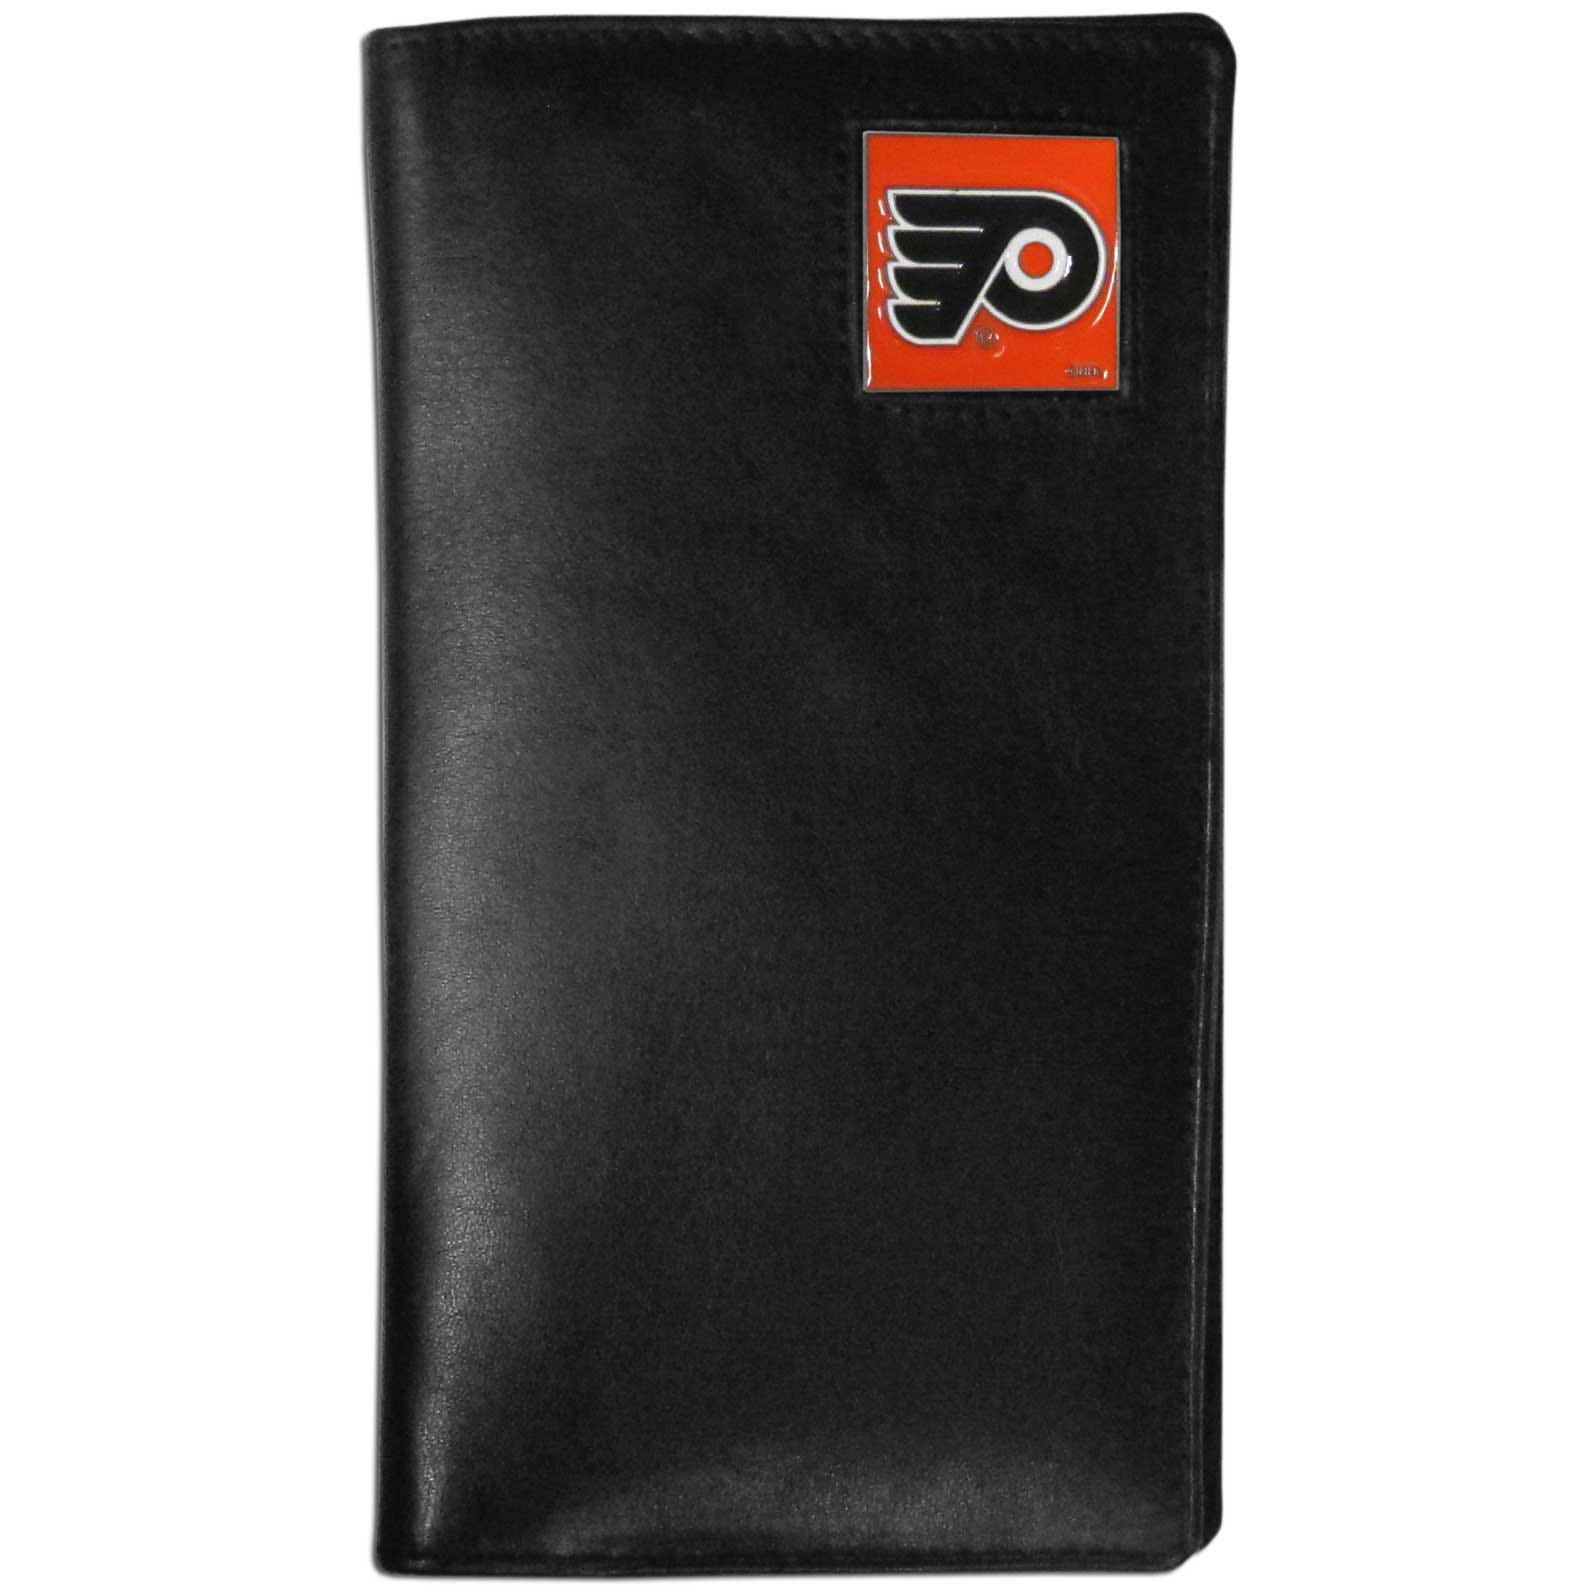 Philadelphia Flyers Tall Leather Wallet - This officially licensed Philadelphia Flyers tall leather wallet cover is made of high quality leather with a fully cast metal Philadelphia Flyers emblem with enameled Philadelphia Flyers color detail. The cover fits both side and top loaded checks and includes a large zippered pocket, windowed ID slot, numerous credit card slots and billfold pocket. Thank you for visiting CrazedOutSports